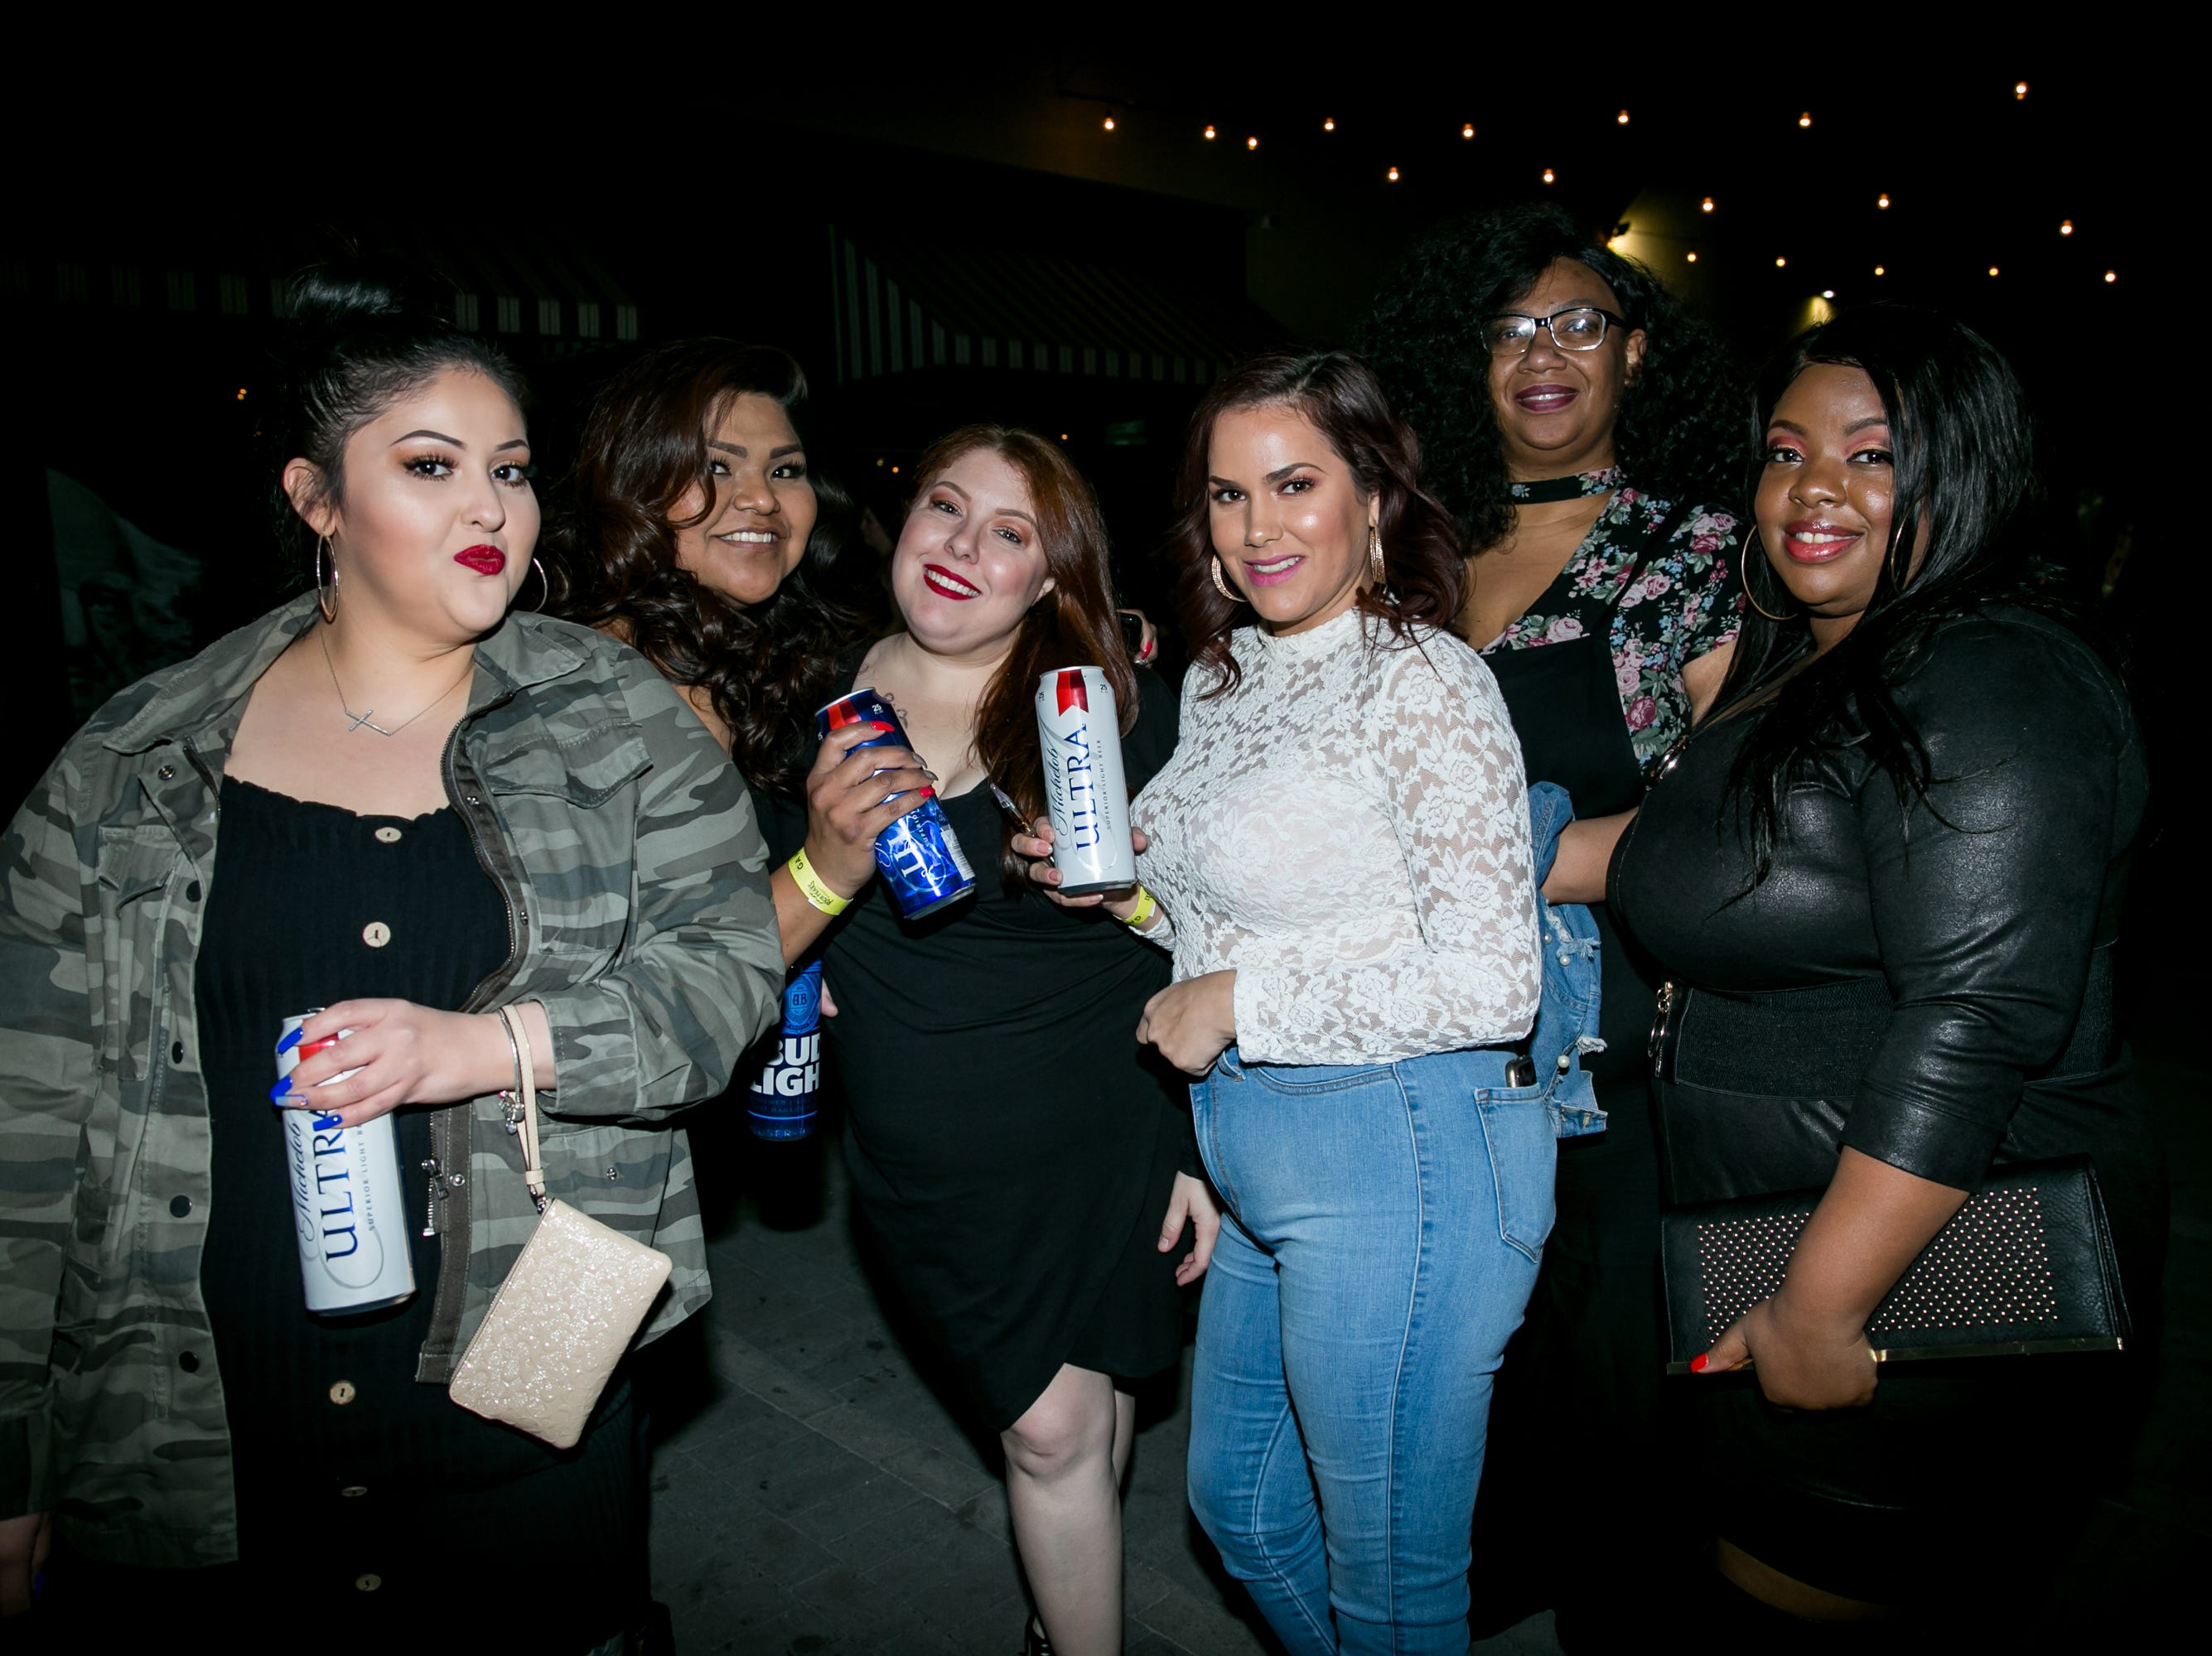 They had his name tattooed on their hearts during Drake Night: Fake Real Love at the Van Buren on Feb. 9, 2019.